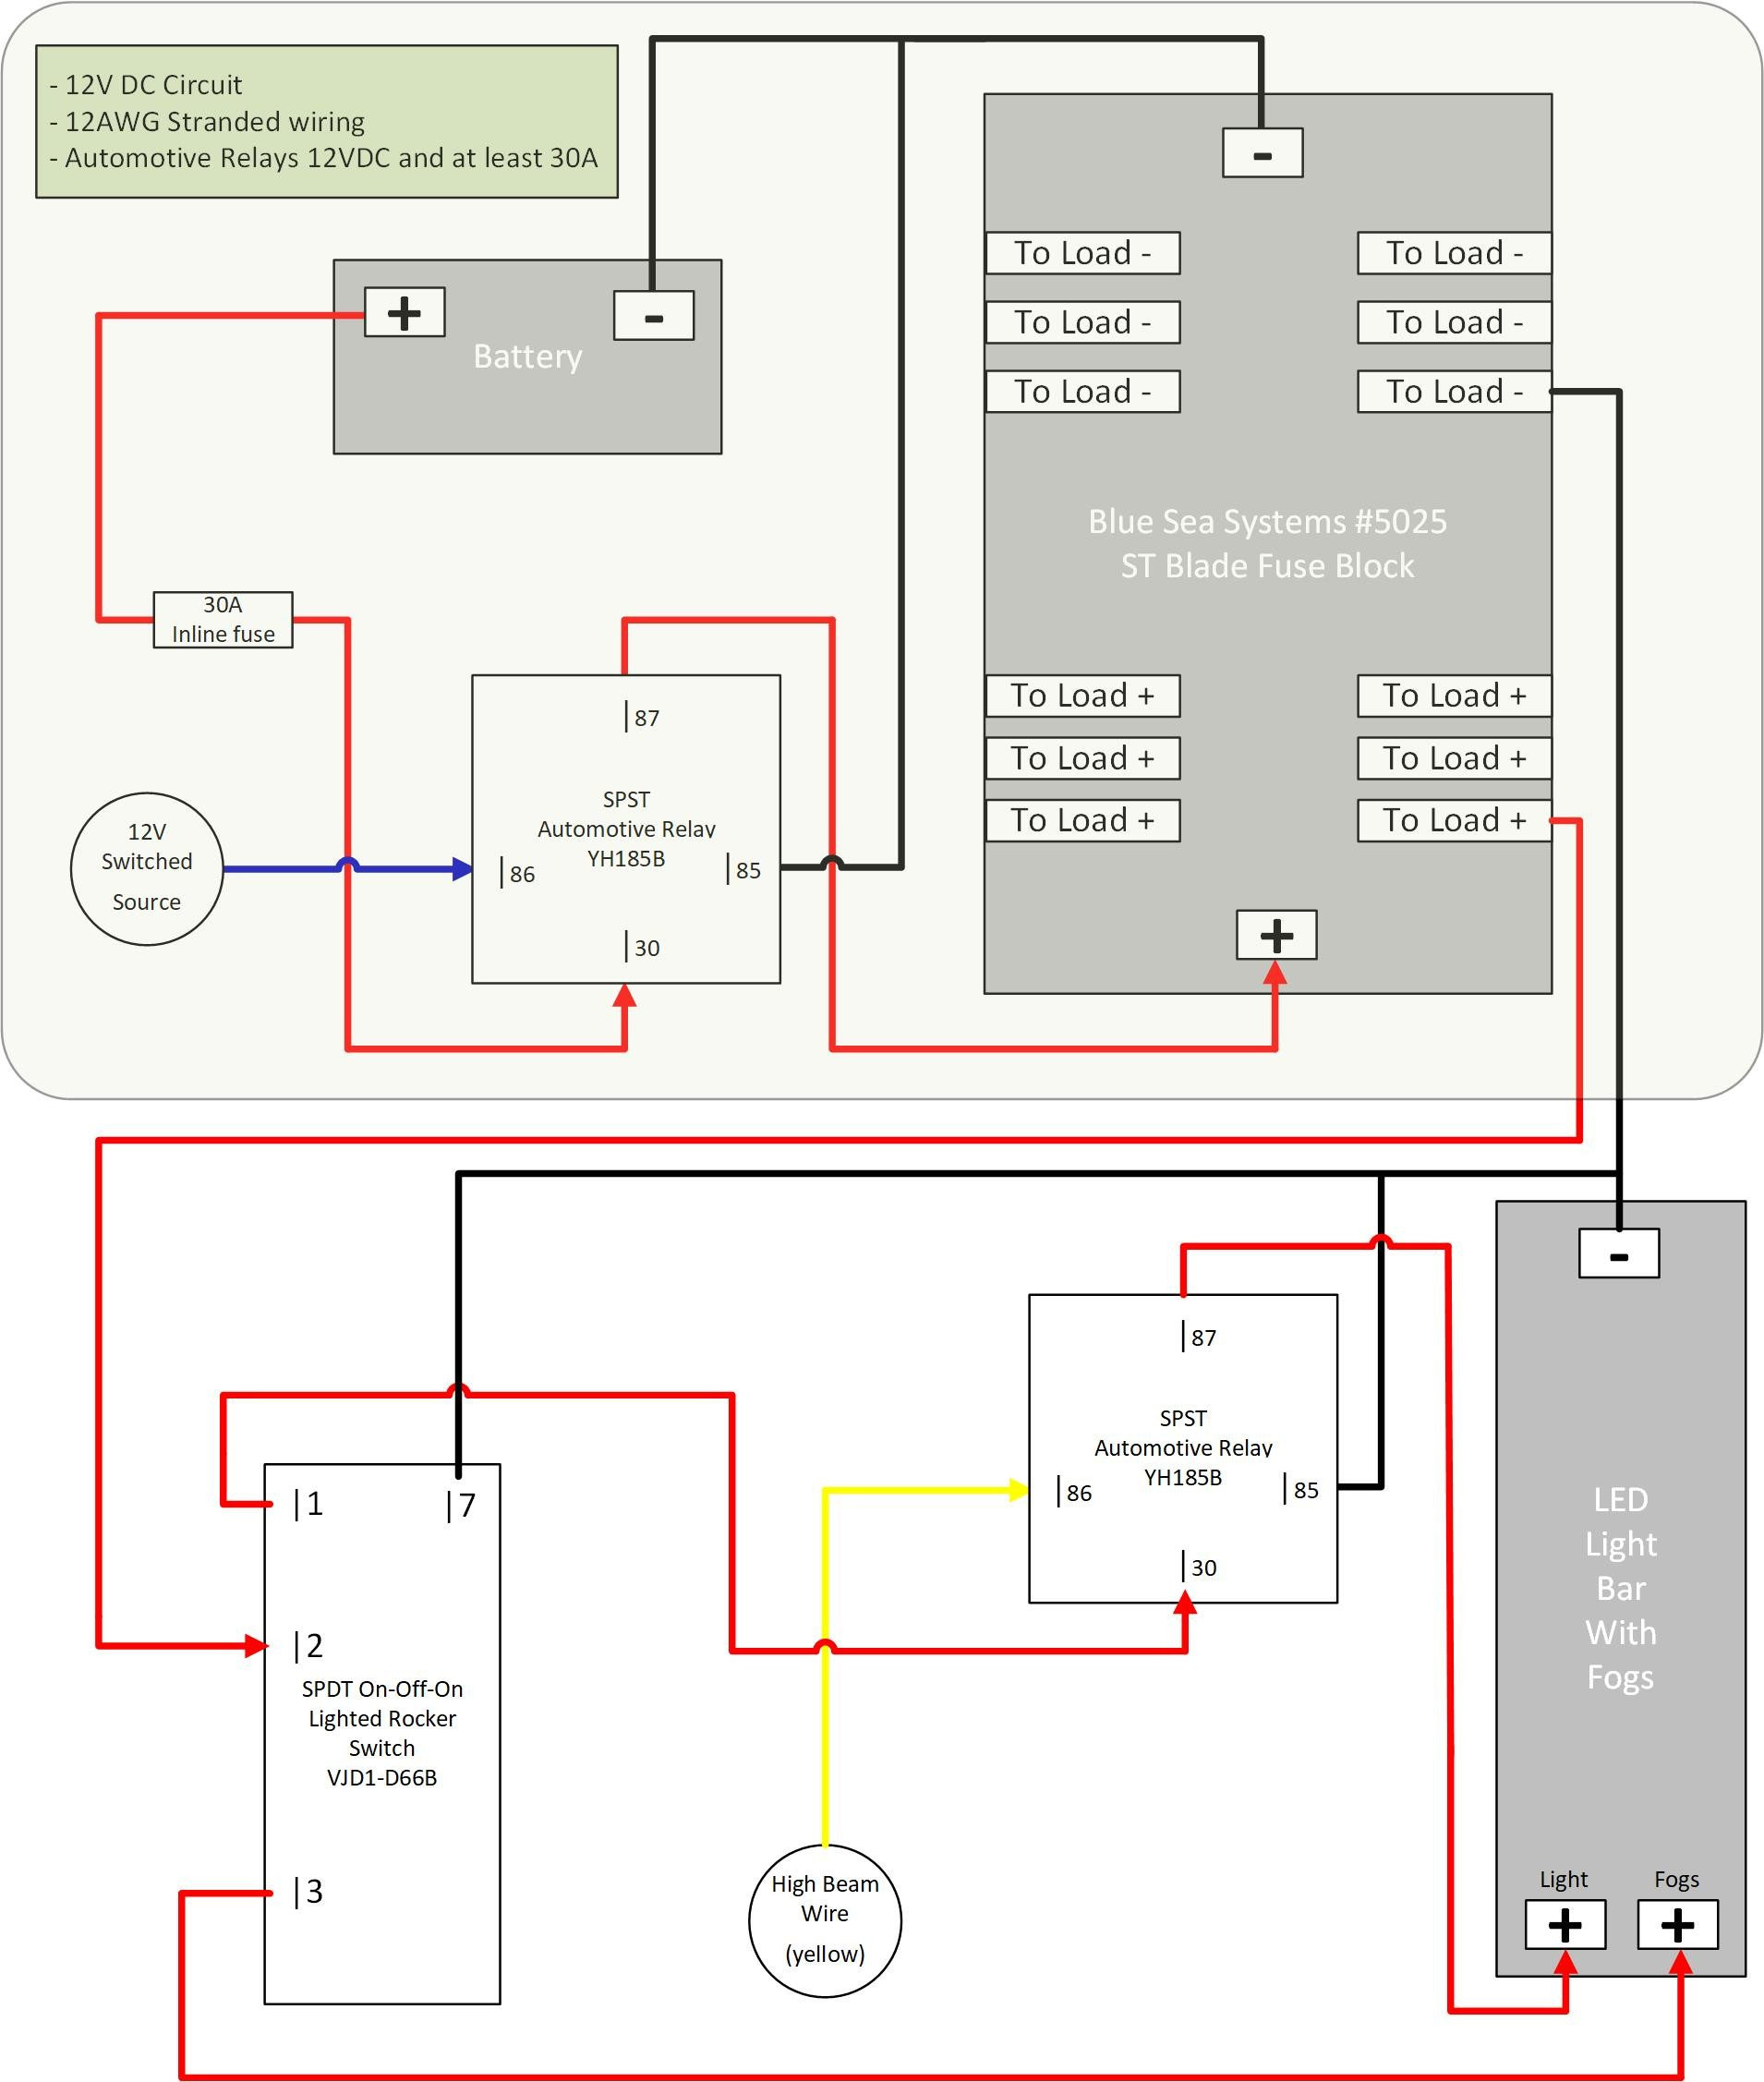 ... code 3 lp6000 wiring diagram residential electrical symbols \u2022 Code  3 MX7000 Light Bar code